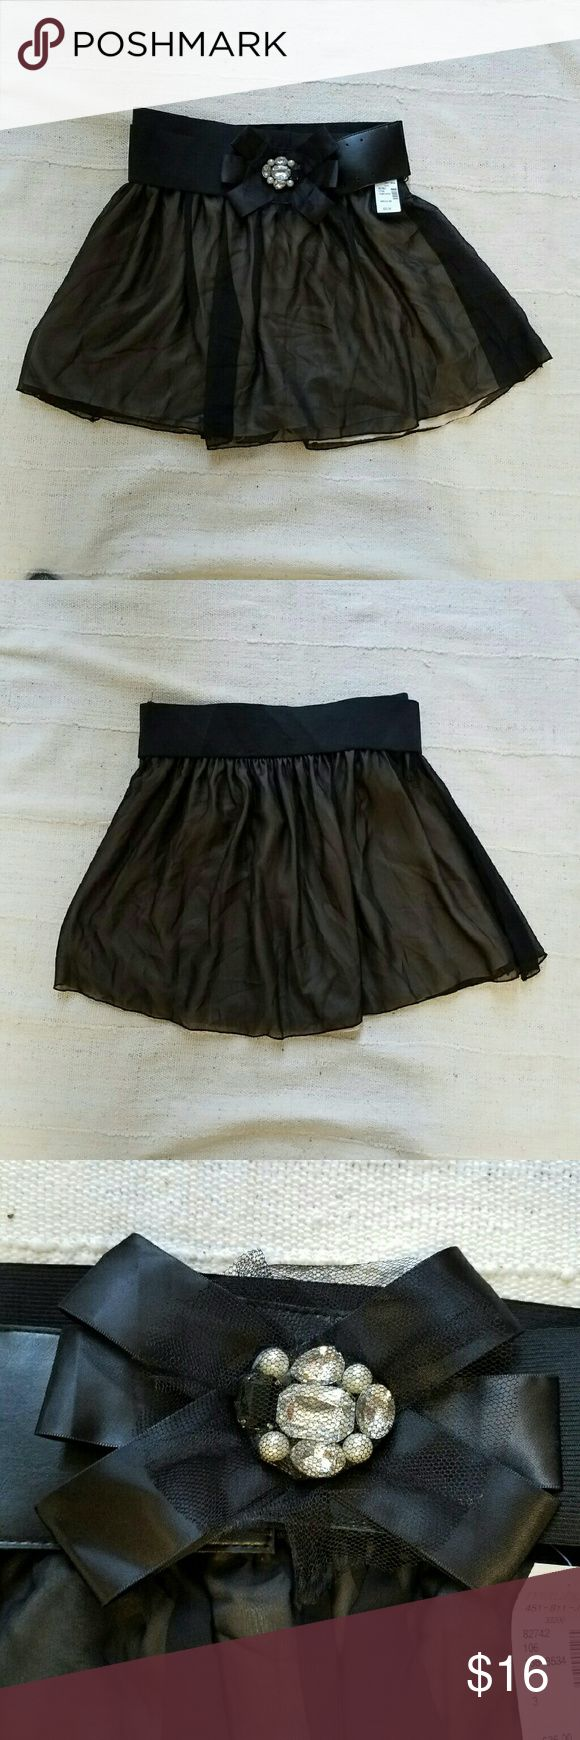 NWT Black Holiday Skirt Bow Front Maurices Cute skirt perfect for Holiday & NYE parties with its bow detail on the belt. Brand new with tags. Has tulle & rhinestone details. Black overlay on top of nude lining. 100% polyester. Size M.  Please check out my closet for more NWT items to bundle with discount and save more with combined shipping. Maurices Skirts Mini